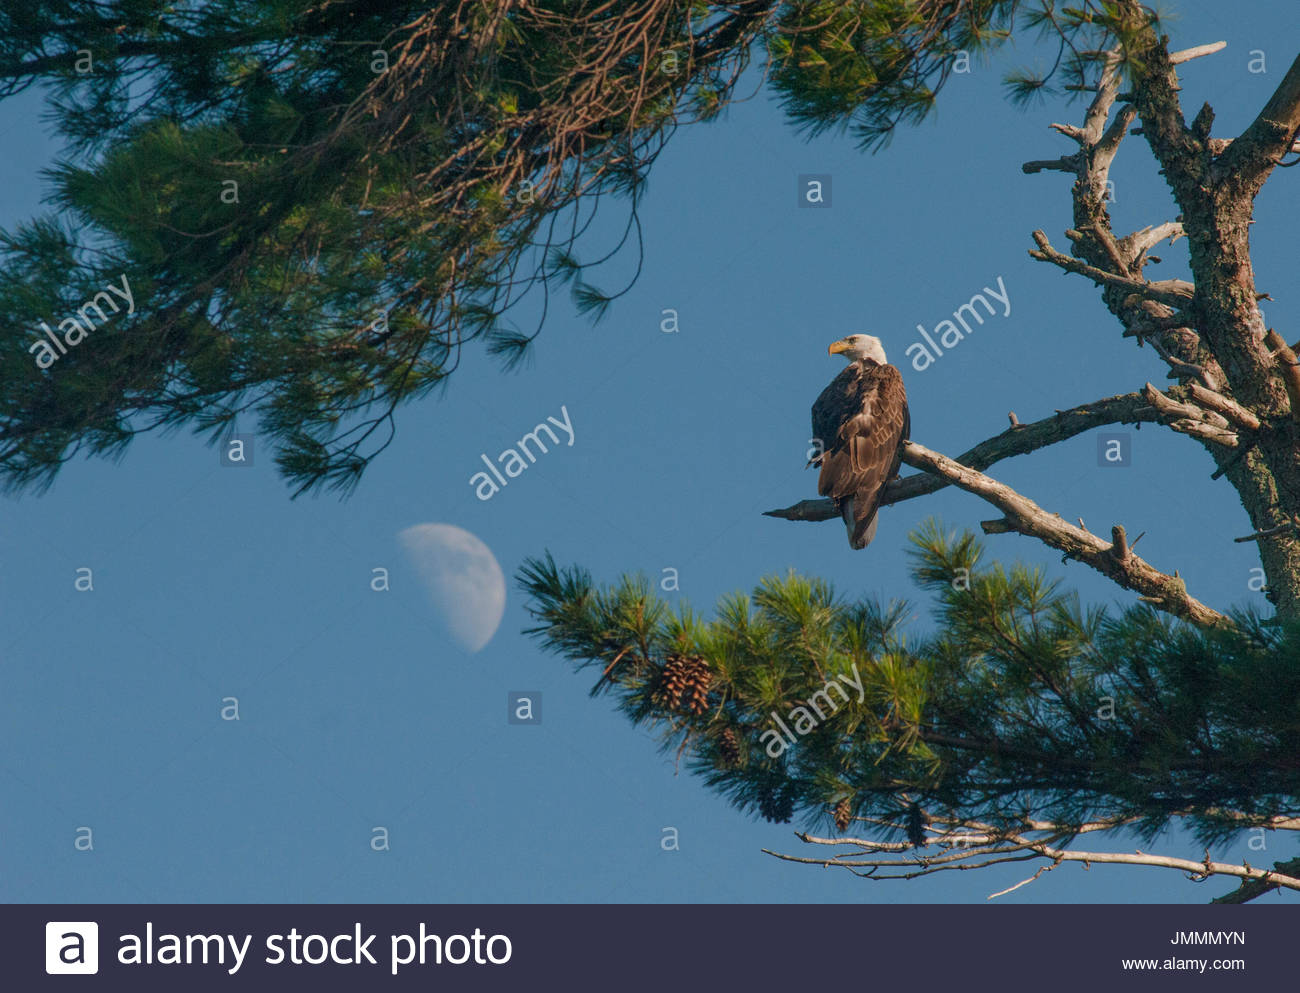 The moon hovers behind a bald eagle perching in a white pine tree. - Stock Image